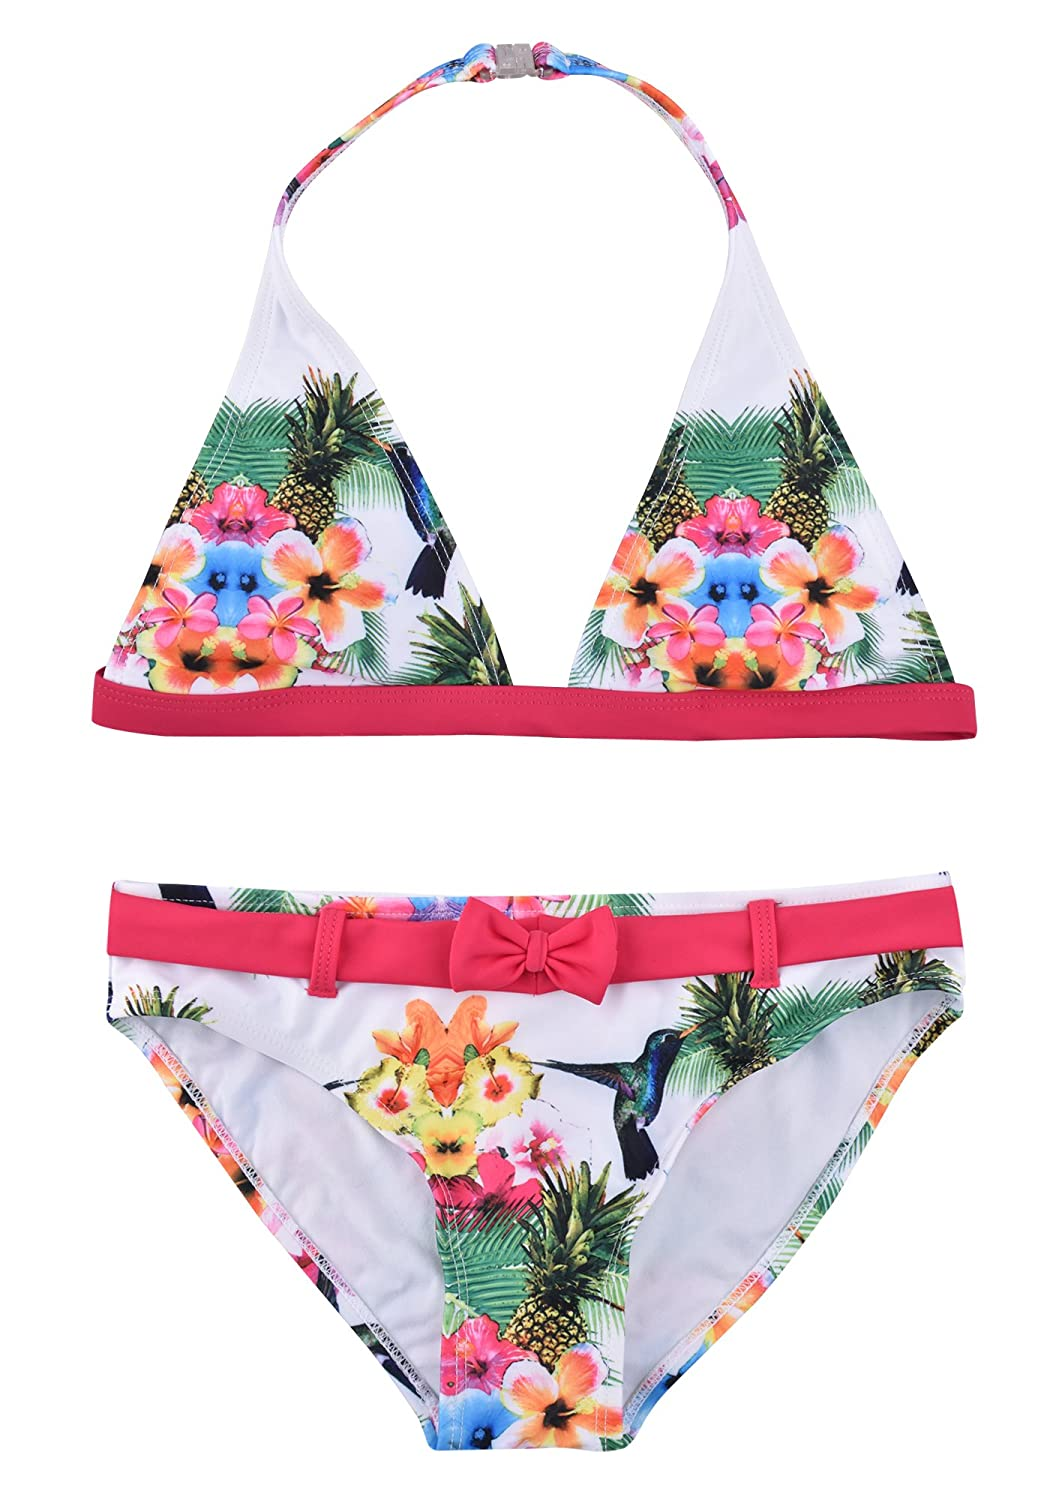 ZOEREA Little Girls Bikinis Two Piece Halter Tankini Swimwear Swimming Suit Set YS2387